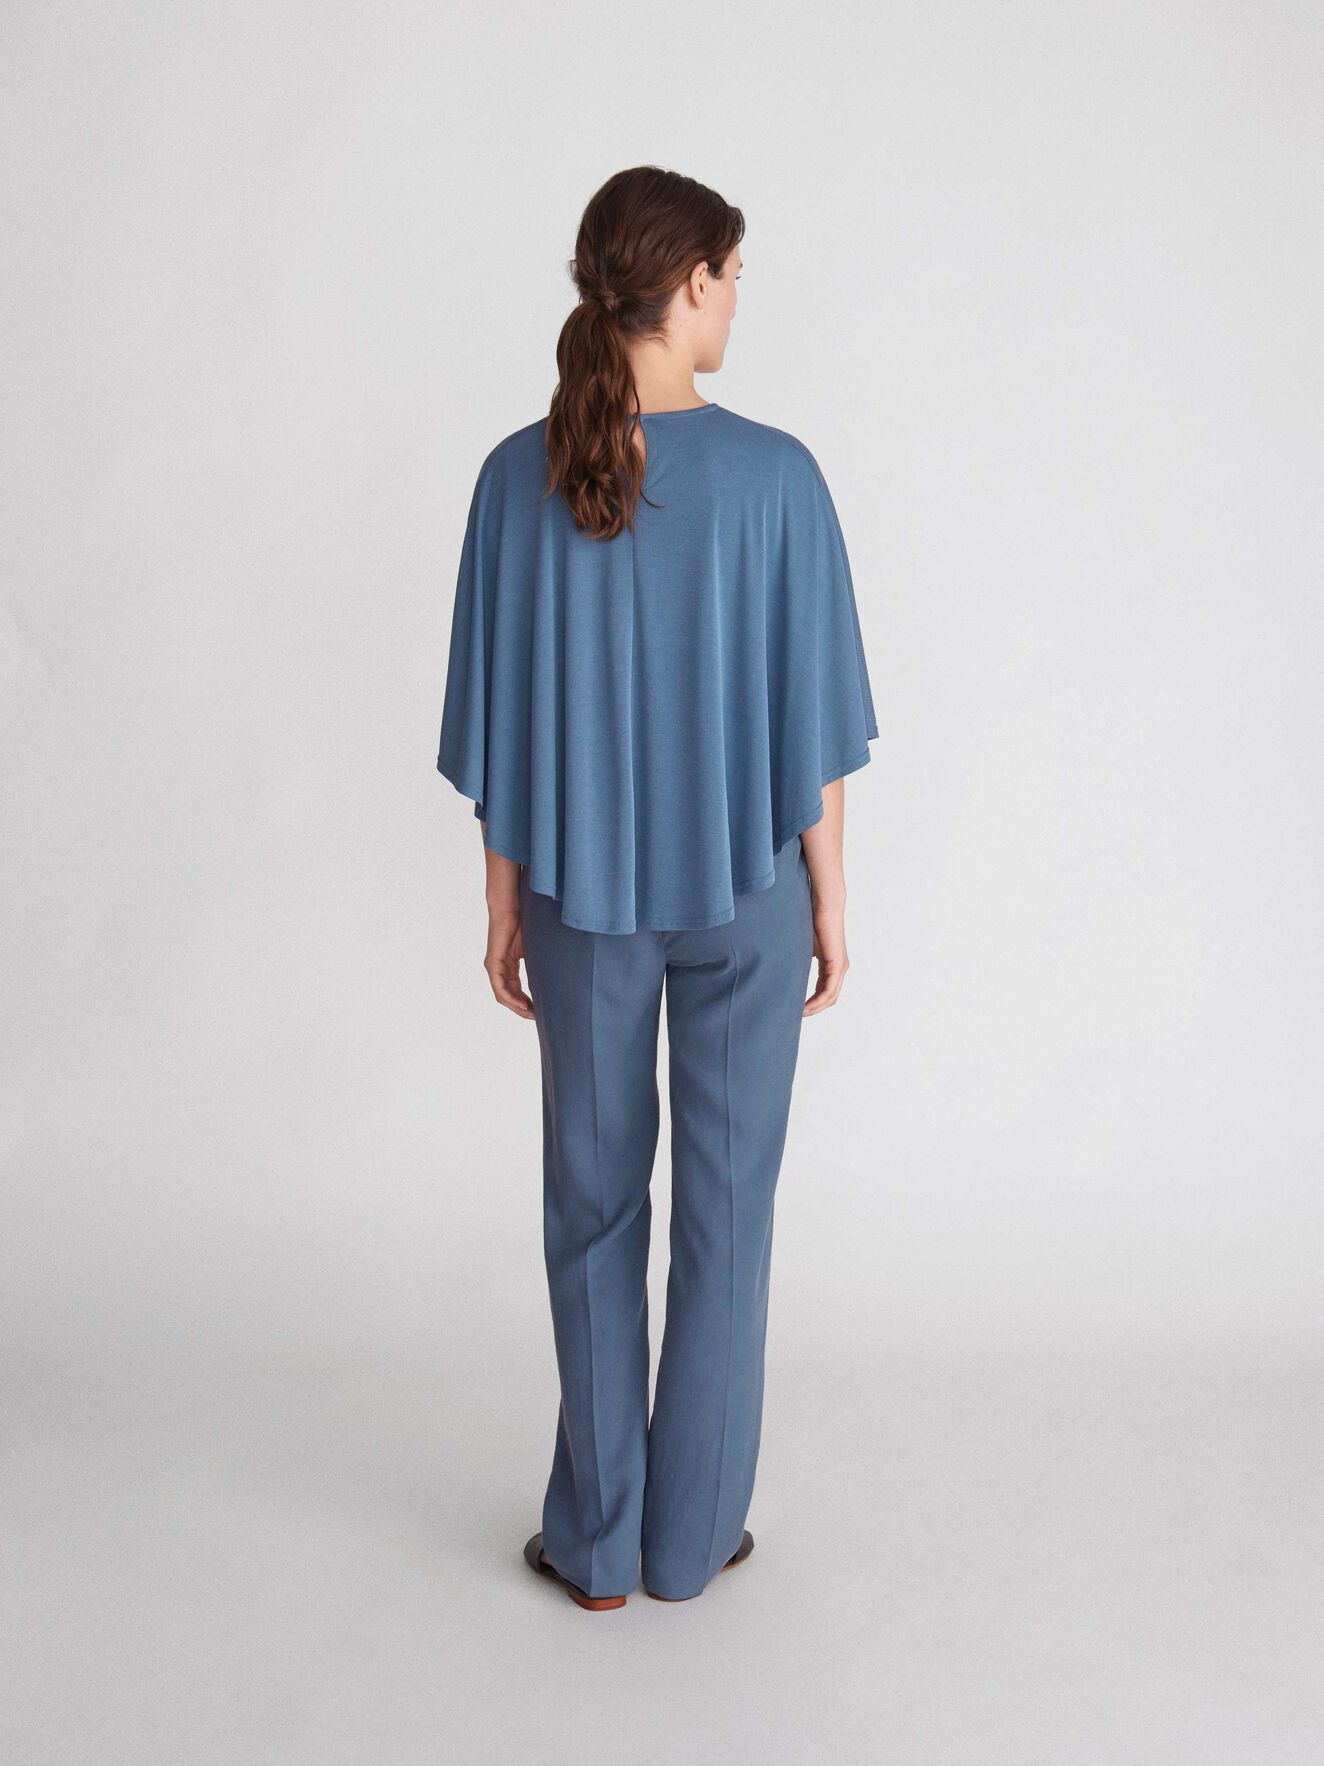 Thilia M Top in Soft blue from Tiger of Sweden